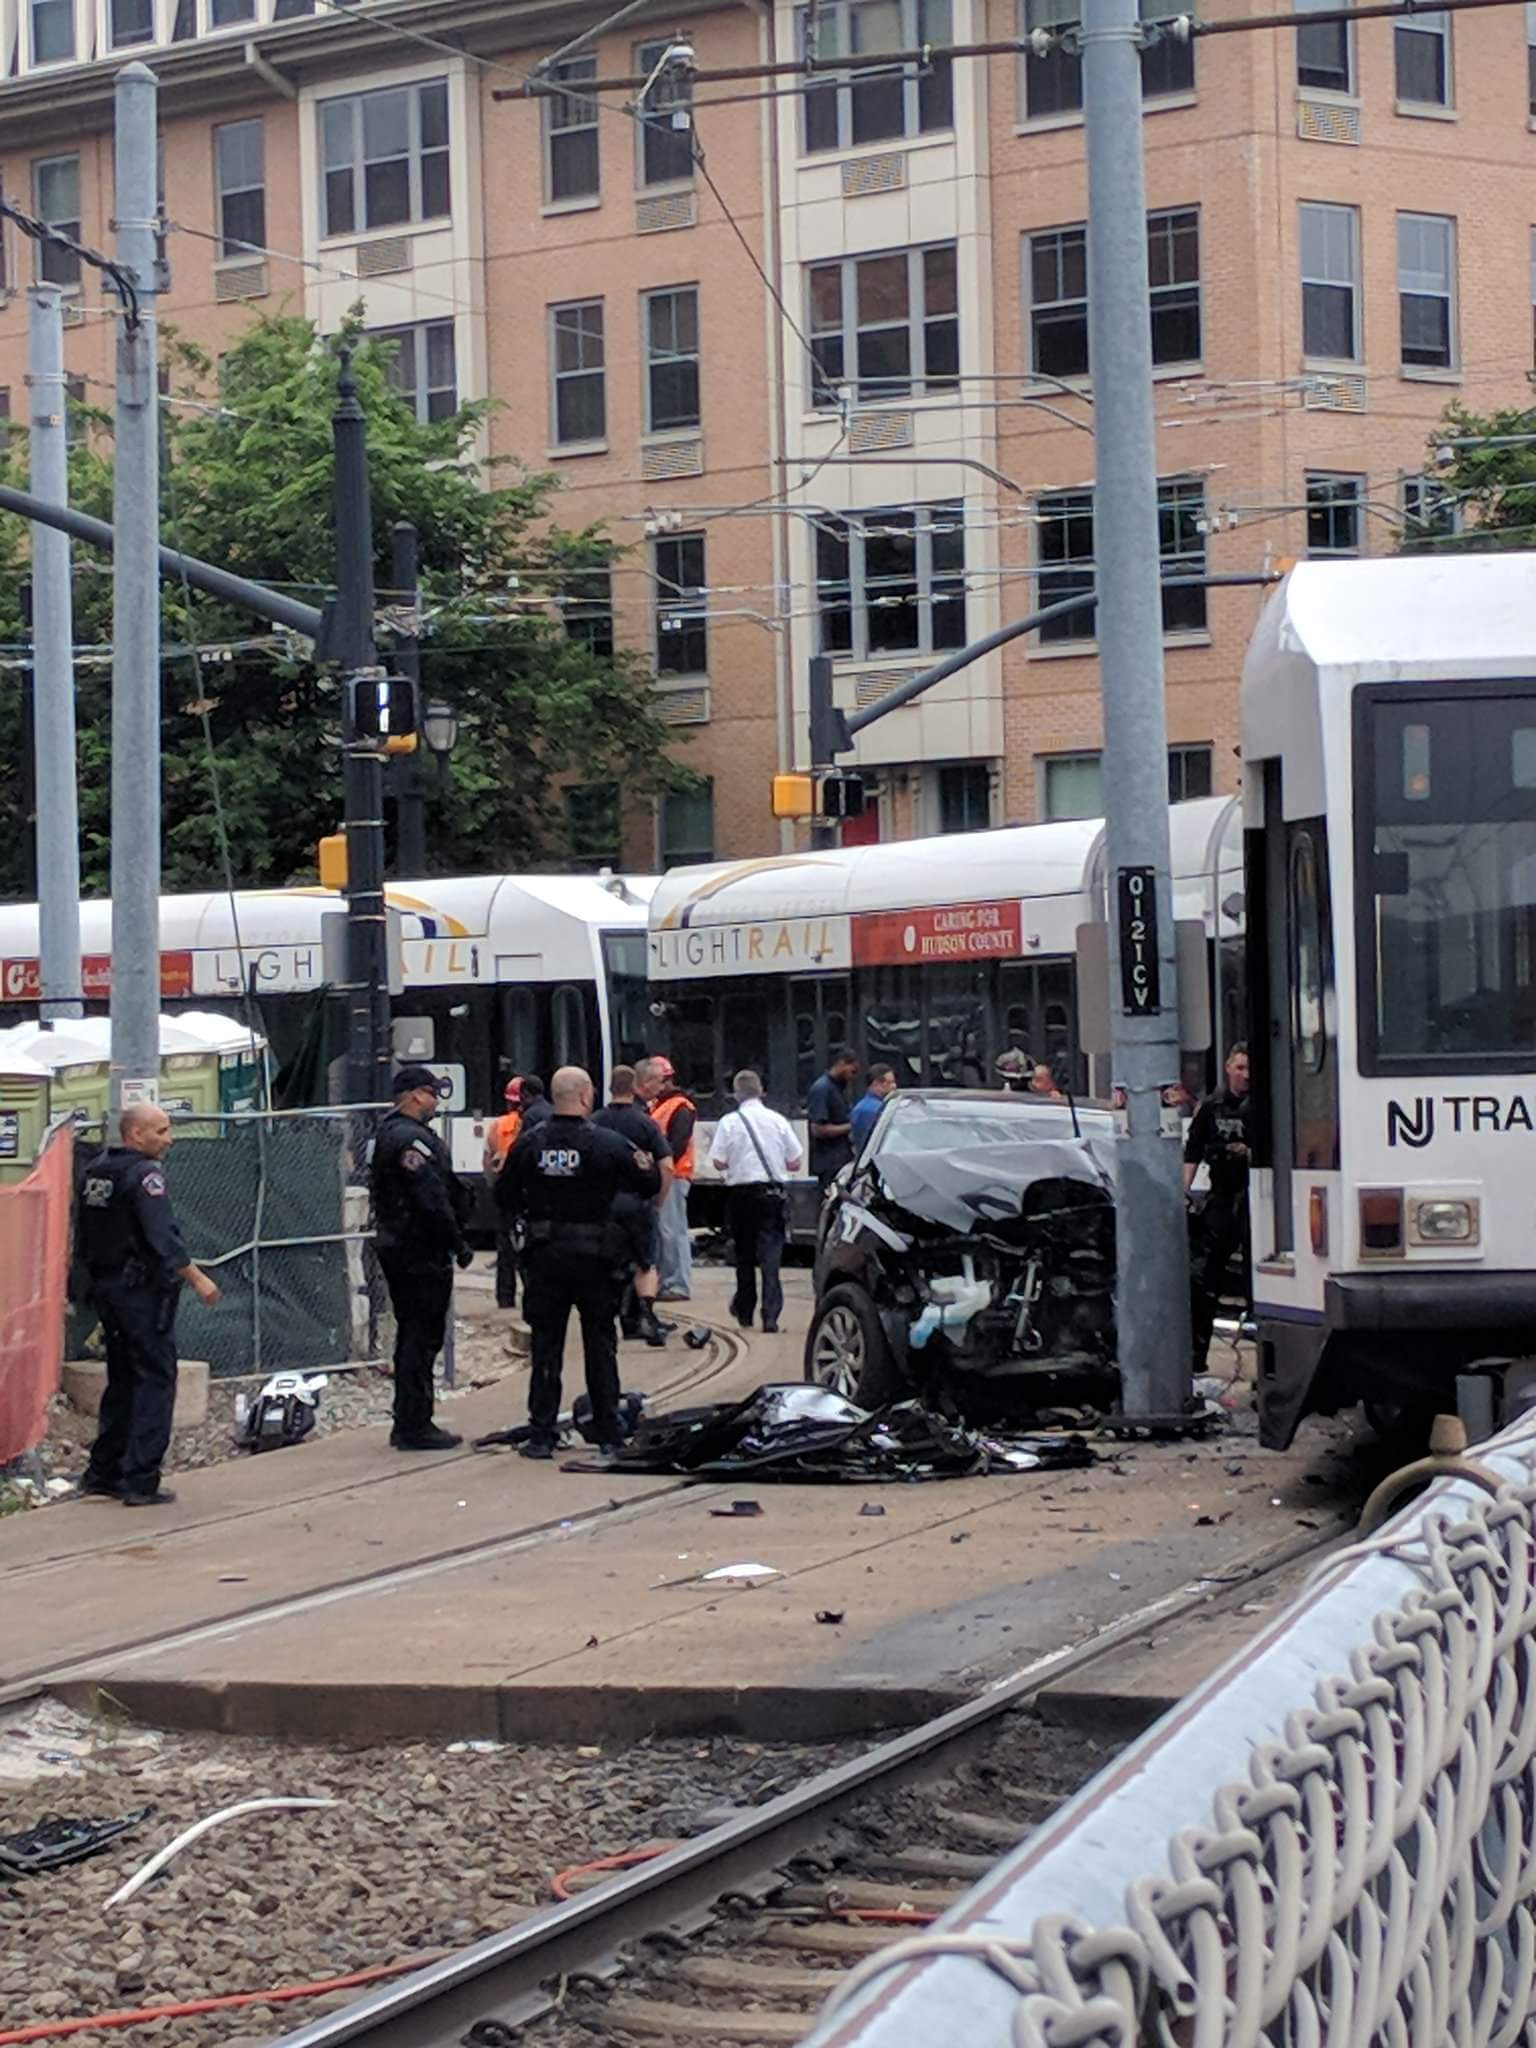 Commuter chaos: Crash halts light rail in Downtown Jersey City for 2.5 hours